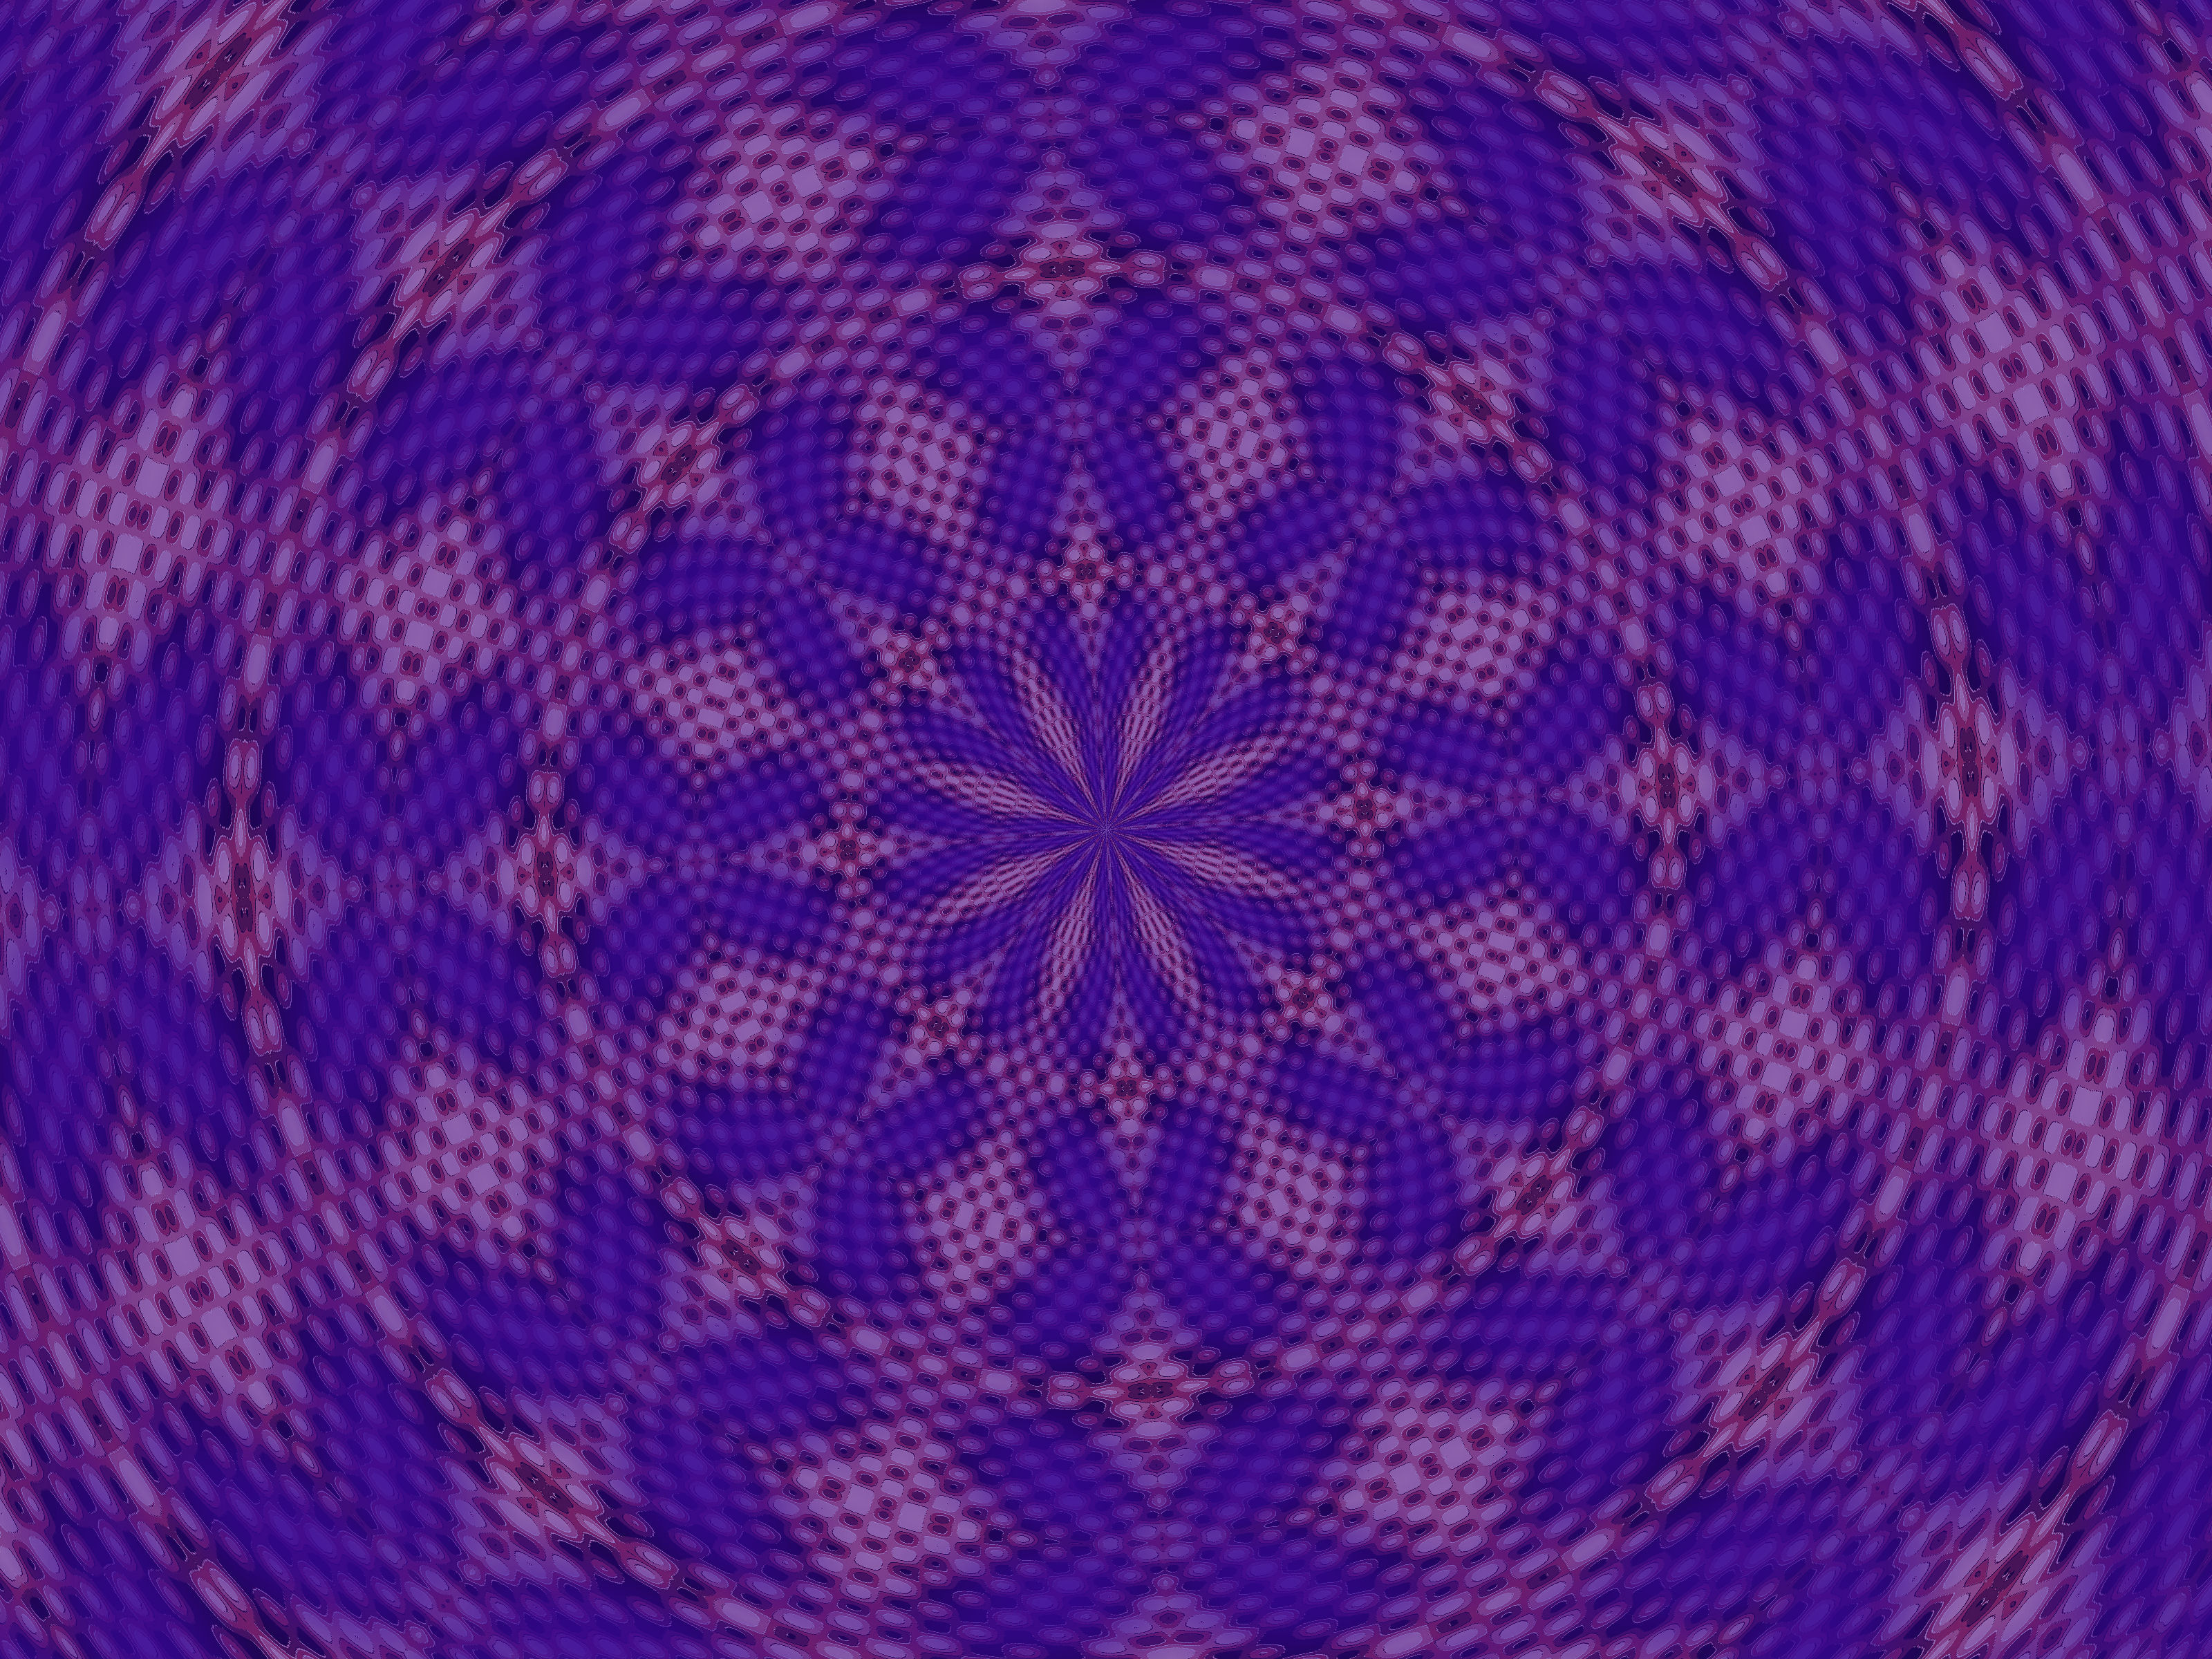 rotational symmetrical pattern in blue and purple